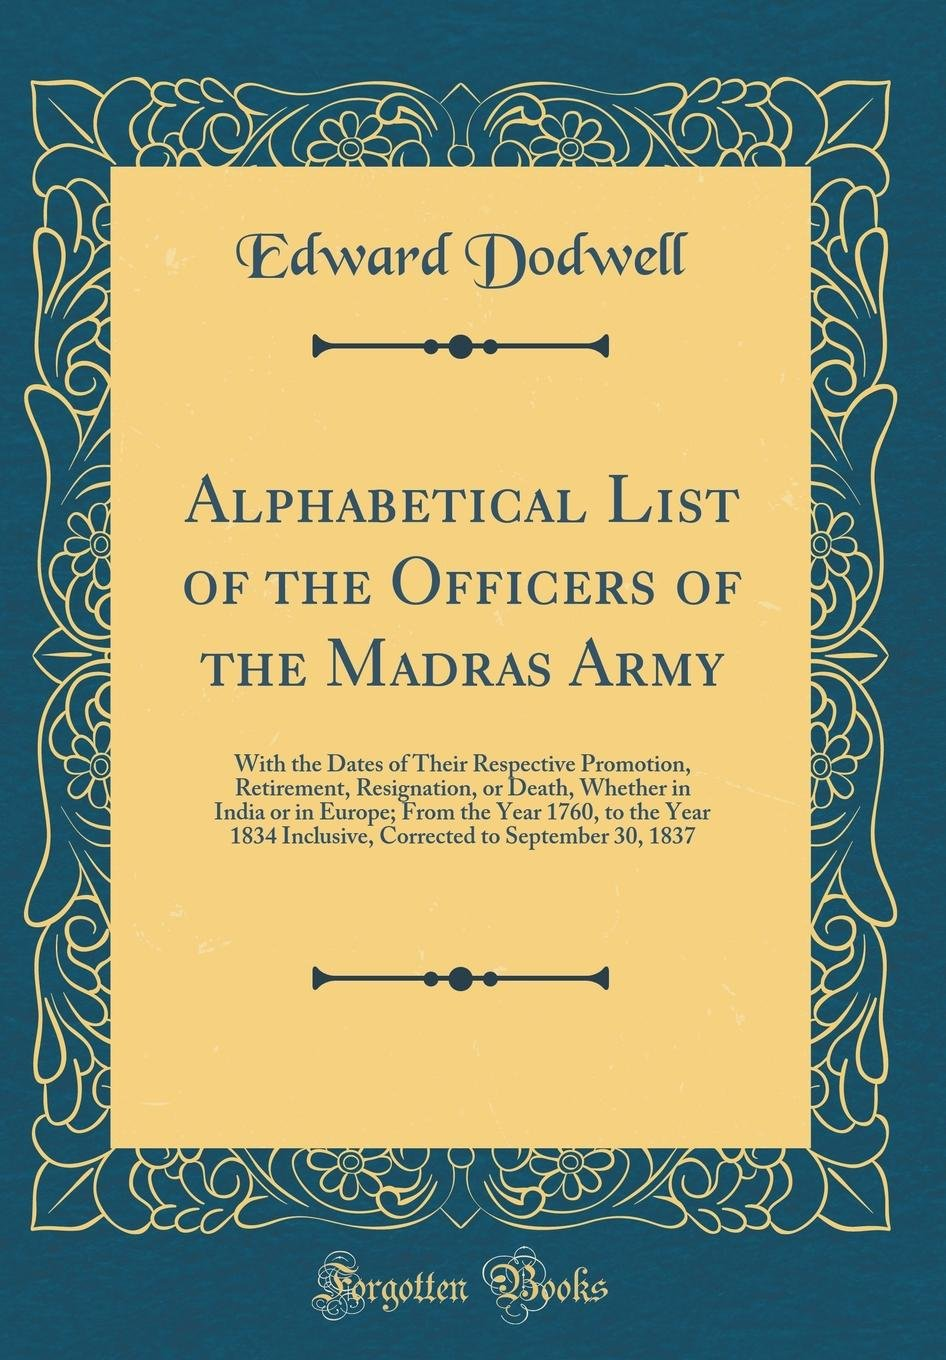 Read Online Alphabetical List of the Officers of the Madras Army: With the Dates of Their Respective Promotion, Retirement, Resignation, or Death, Whether in ... Inclusive, Corrected to September 30, 1837 PDF